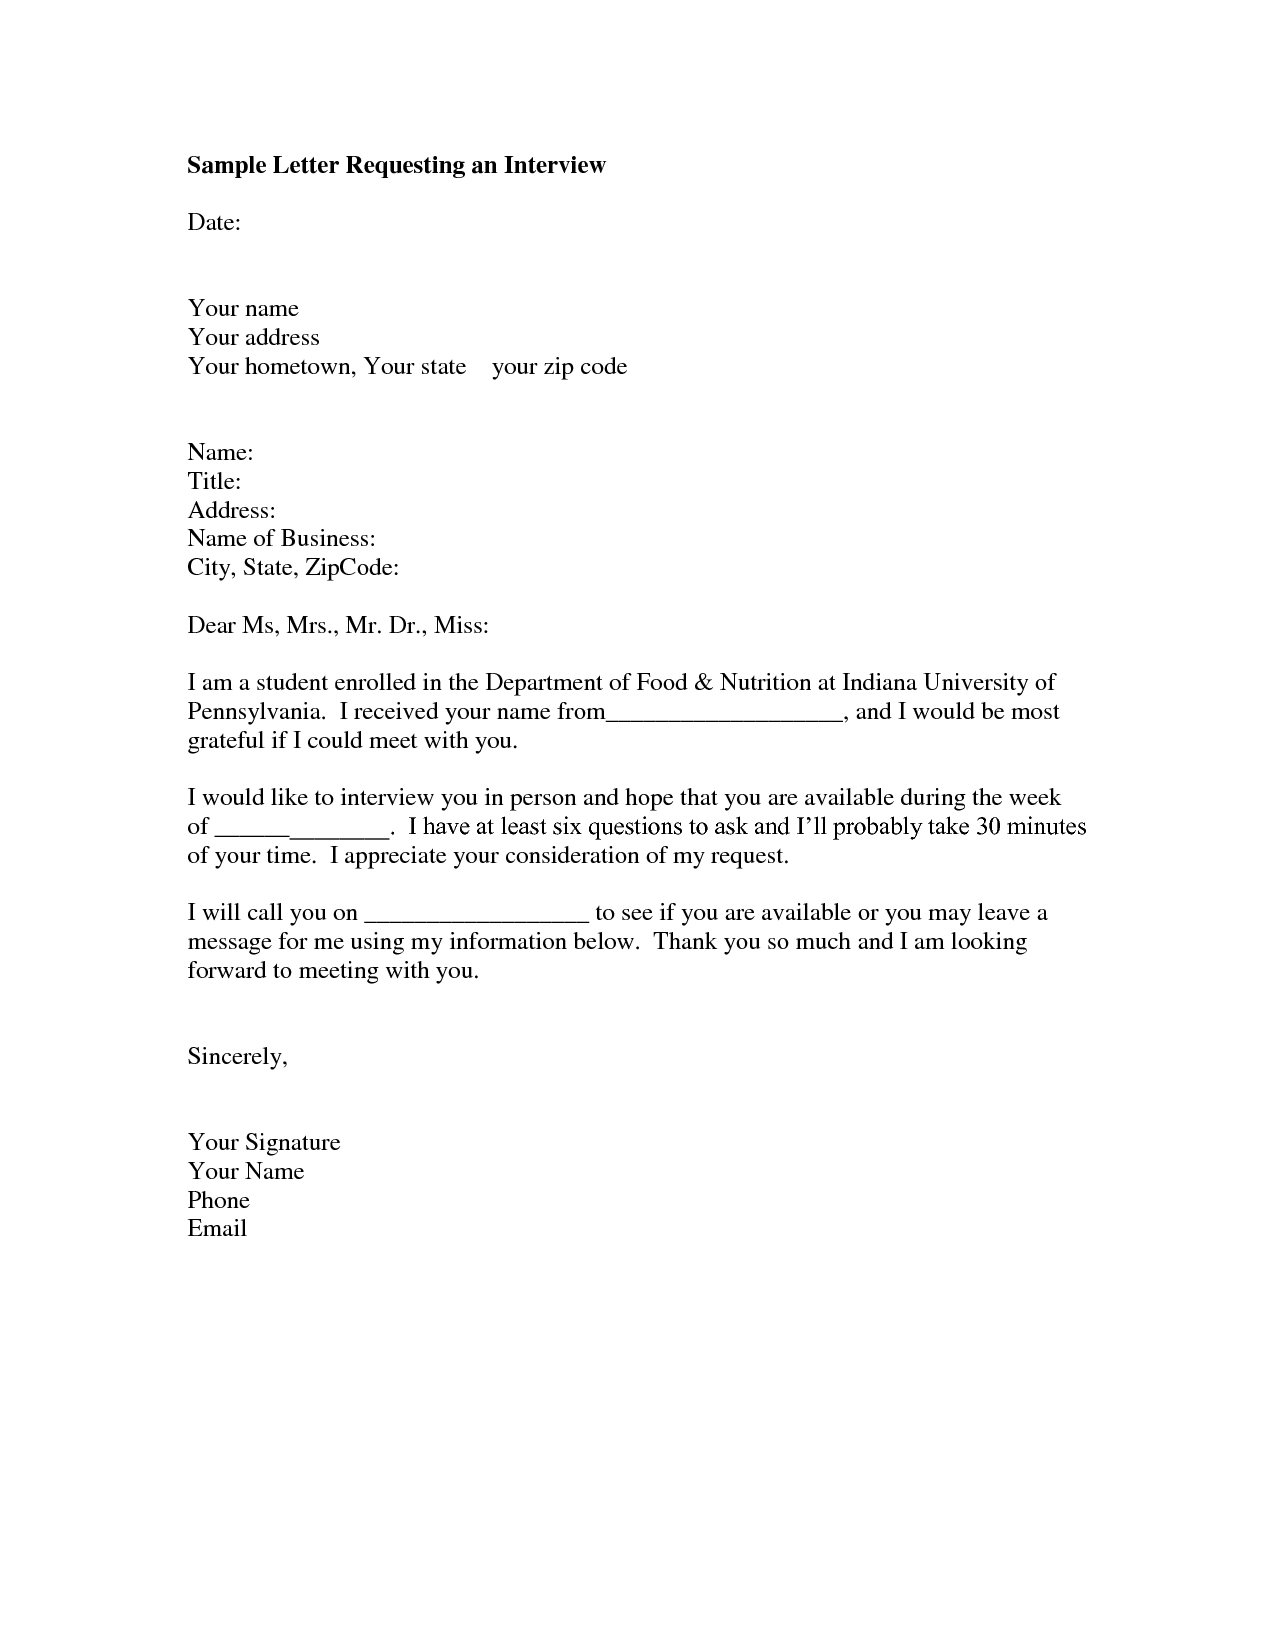 Interview request letter sample format of a letter you can use to interview request letter sample format of a letter you can use to request an interview with a prospecitive employer spiritdancerdesigns Gallery